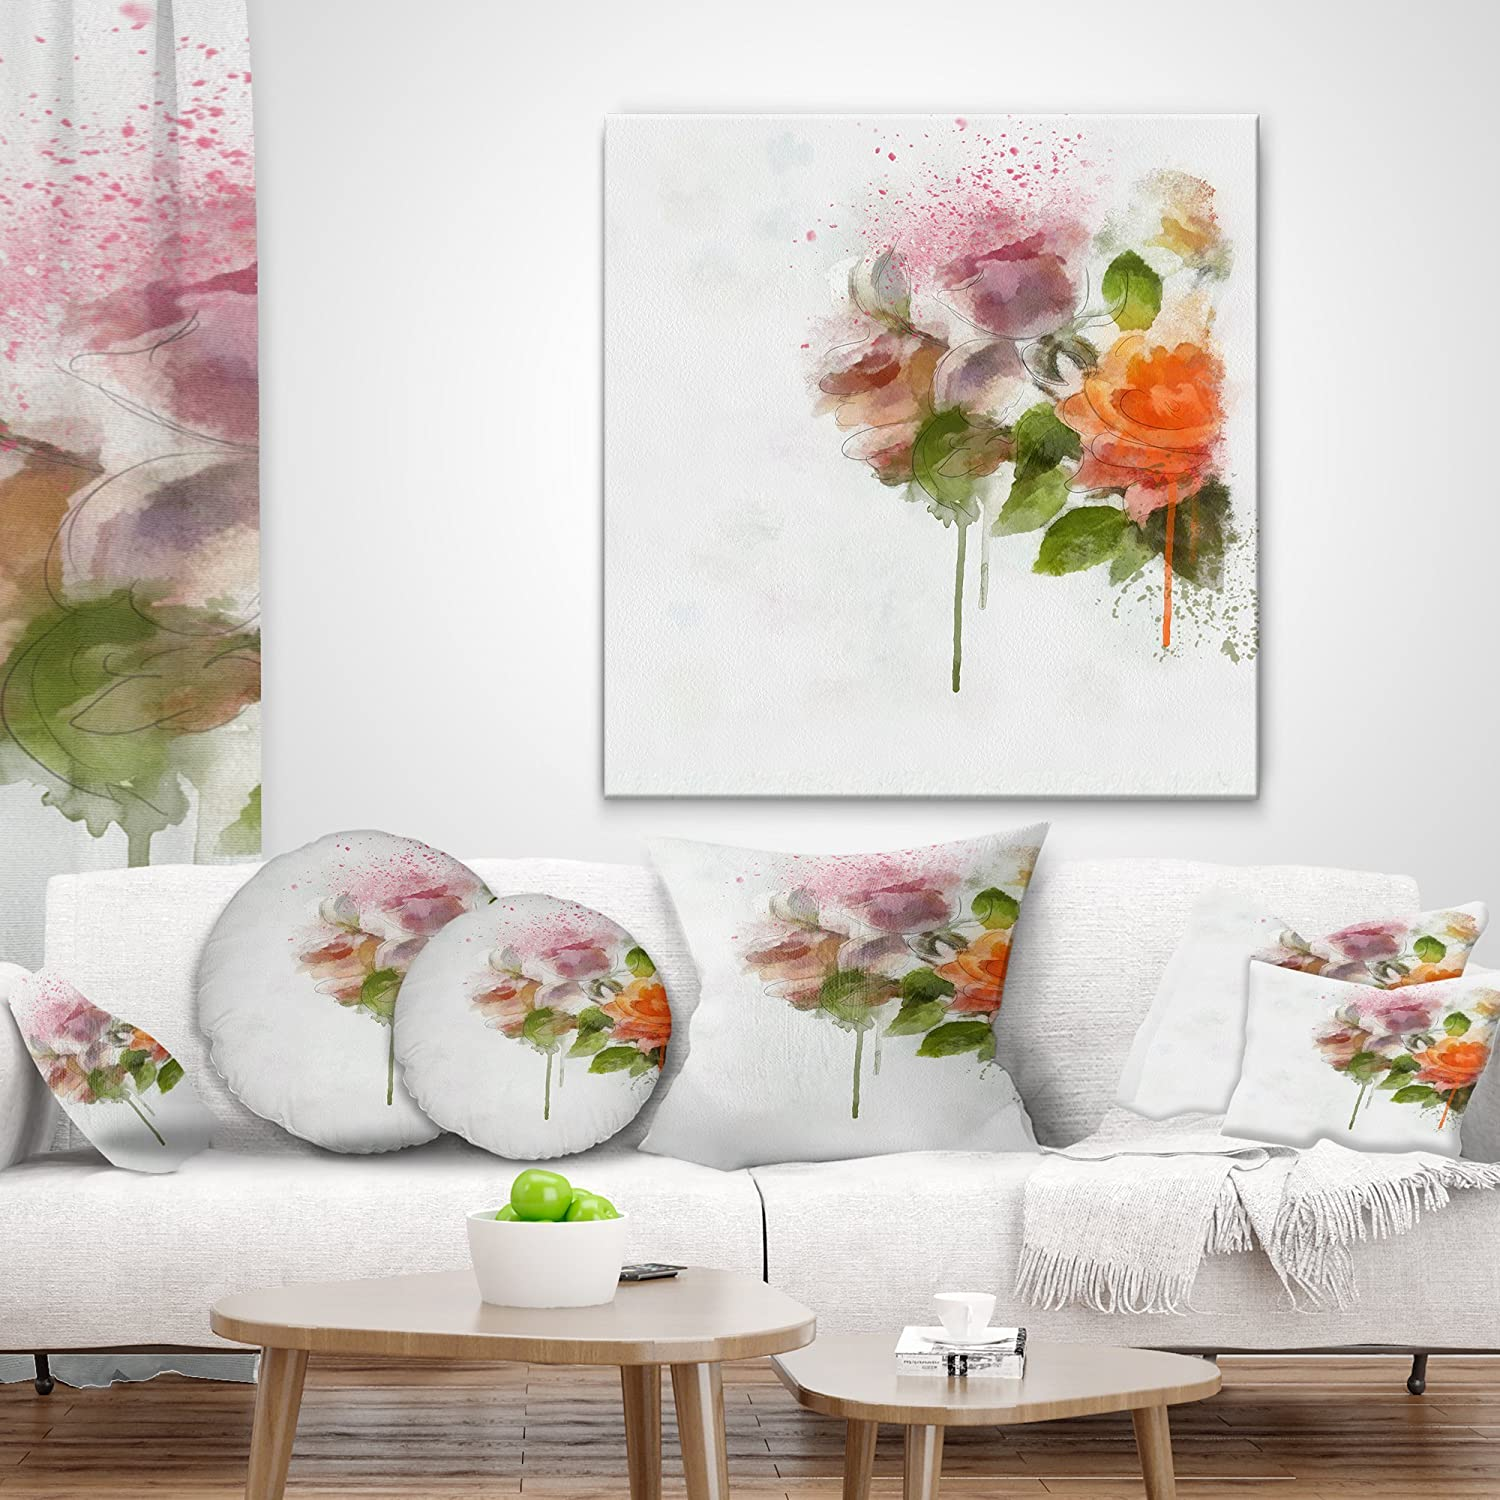 Designart CU13758-16-16 Abstract Hand Drawn Sketch Flowers Cover for Living Room Sofa Throw Pillow 16 x 16